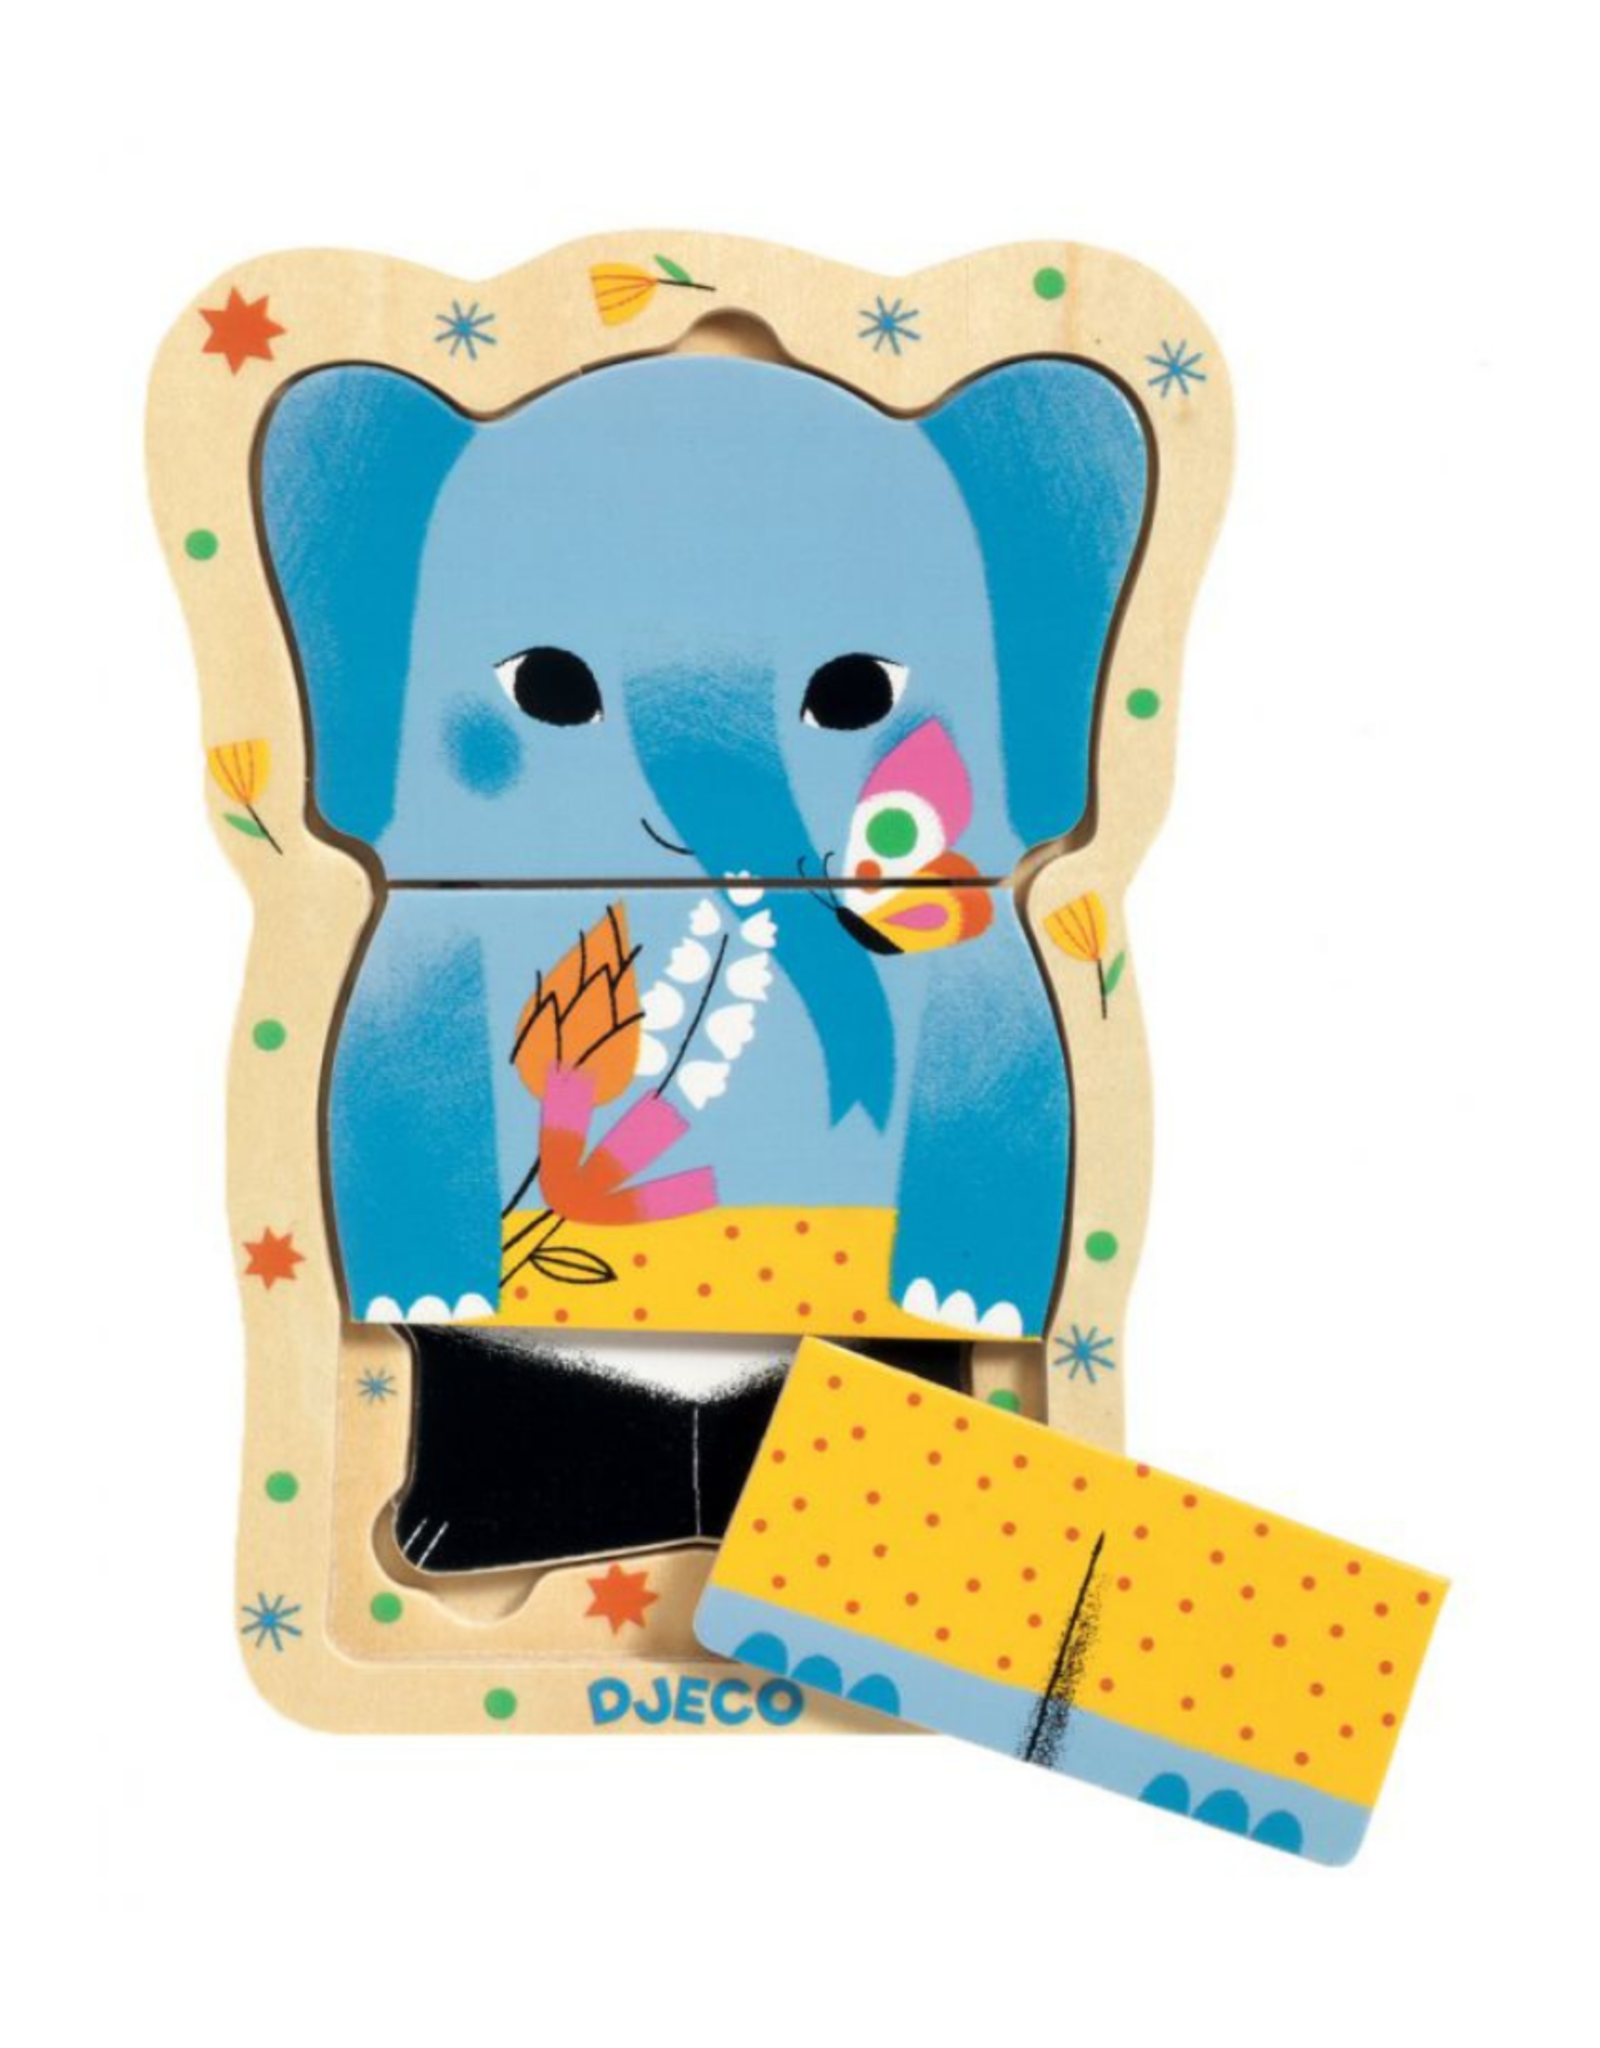 Djeco Wooden Puzzle - Lucky & Co Layered